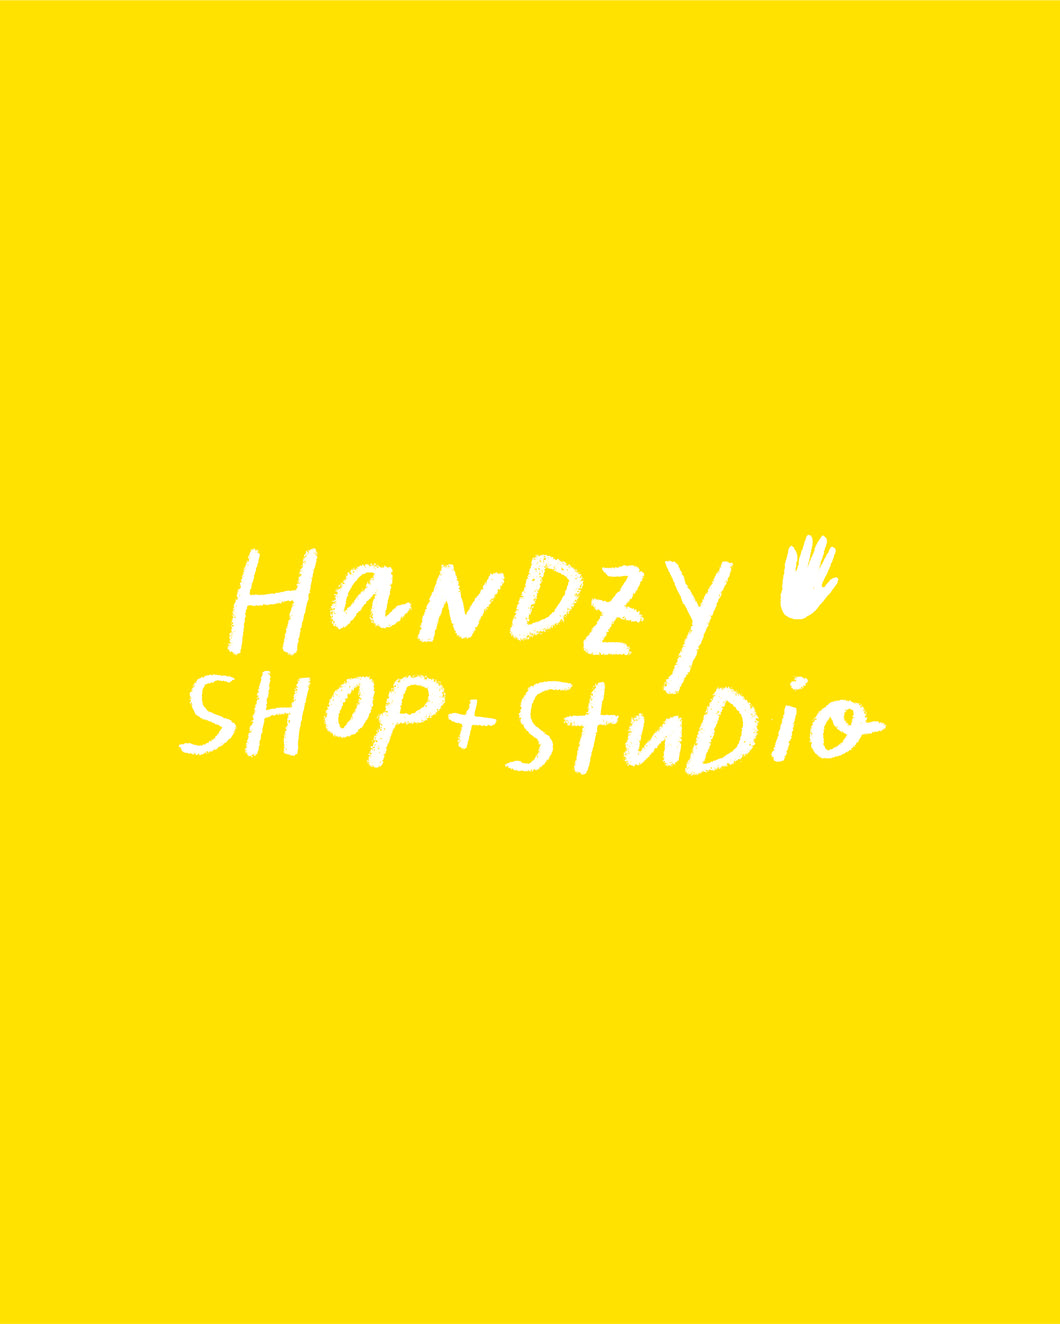 Handzy Shop + Studio Gift Card